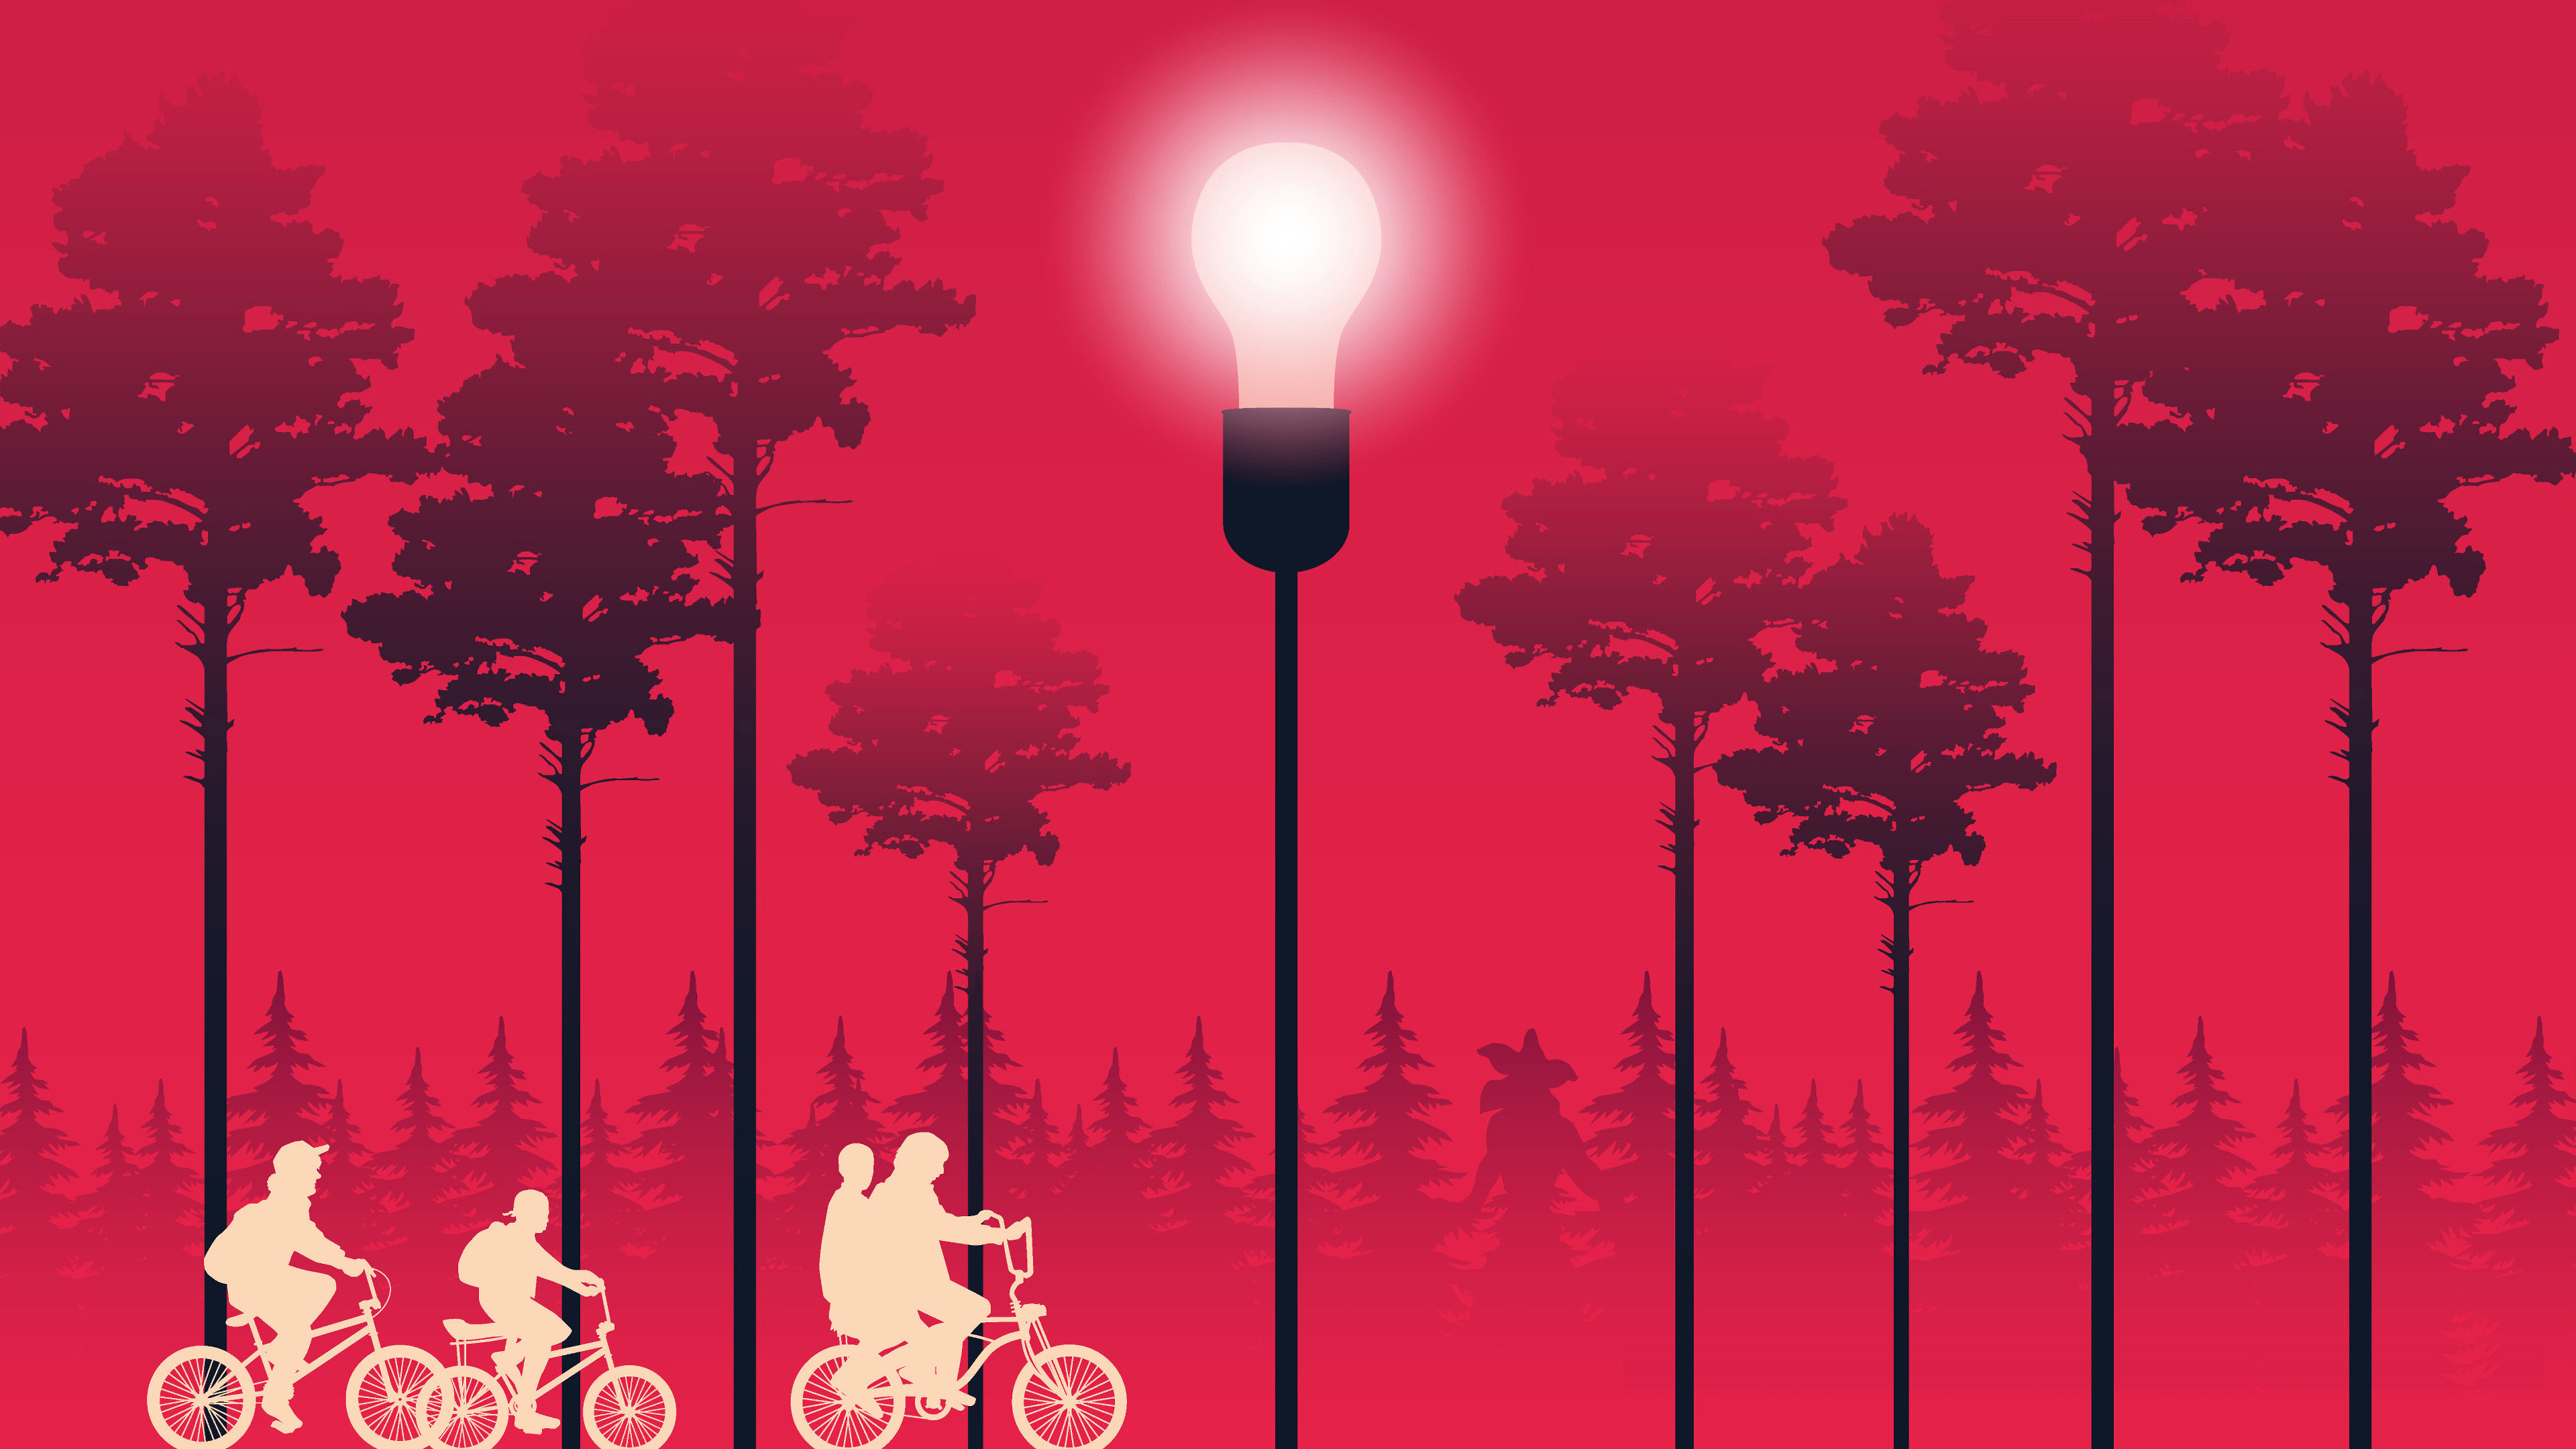 Stranger Things Minimalist 4k Wallpaper 3